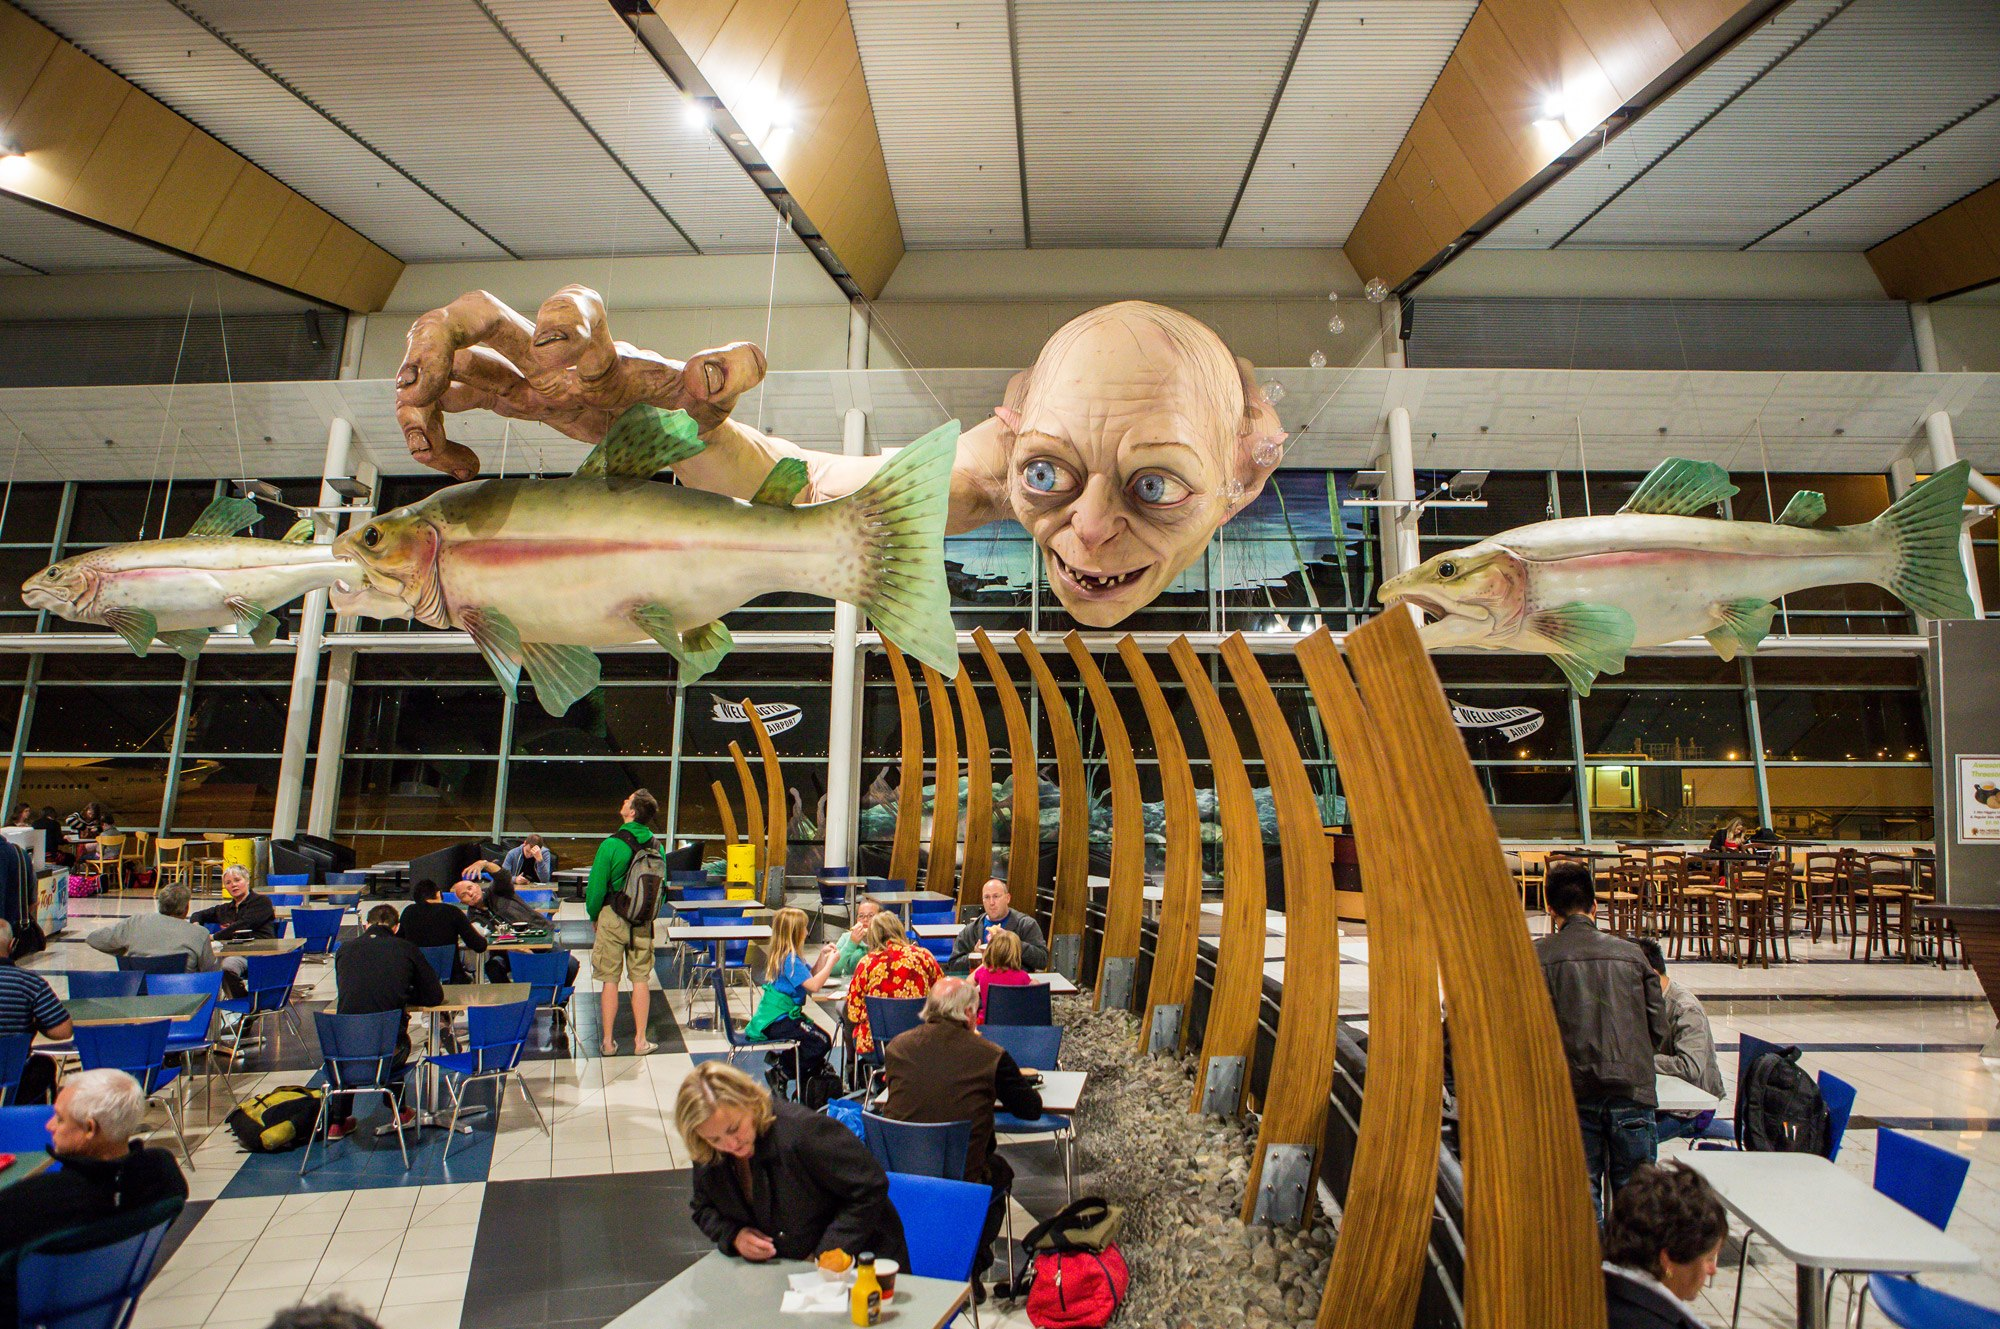 wellington-airport-biggest-gollum